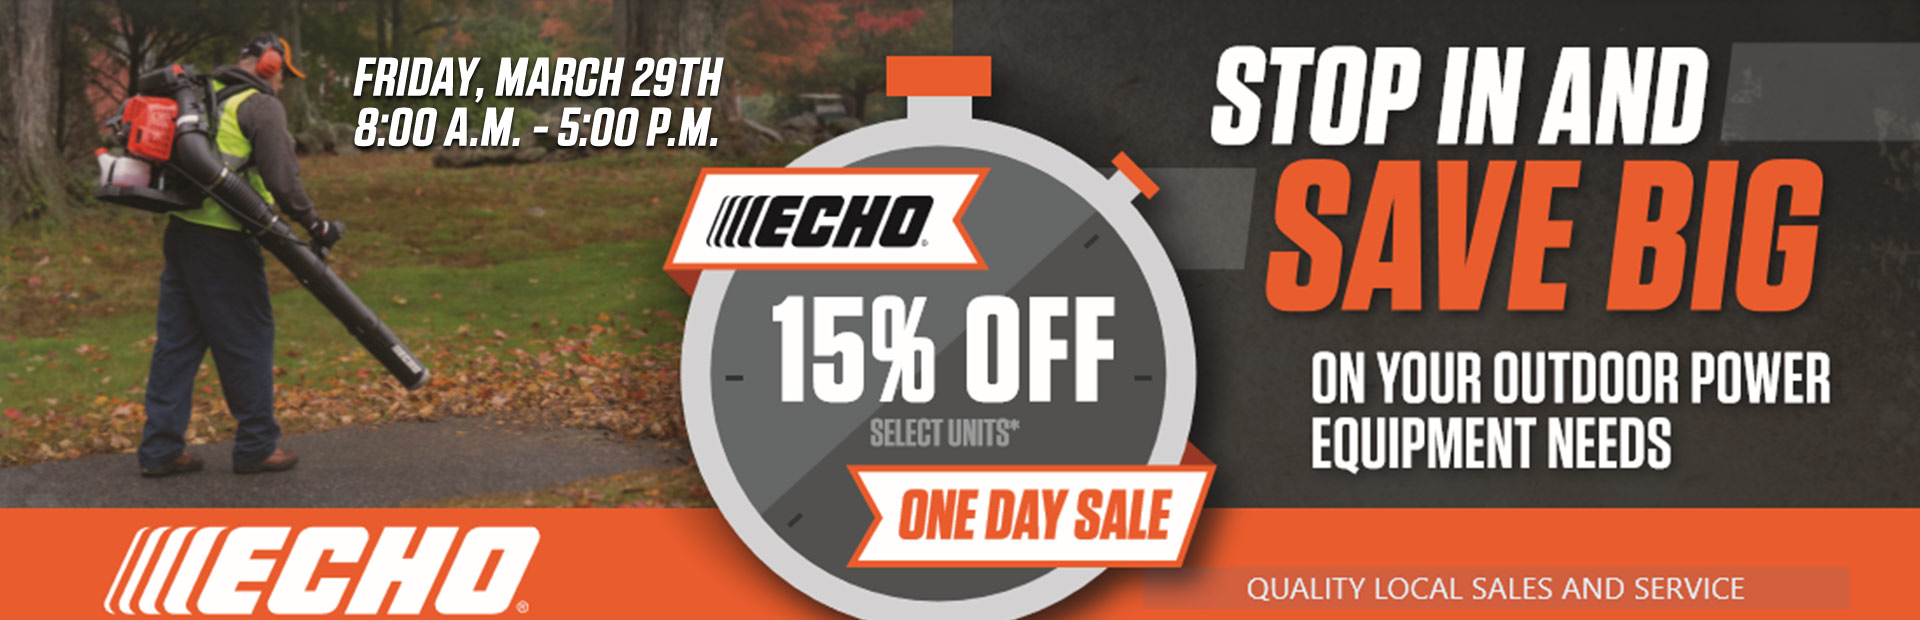 ECHO One Day Sale